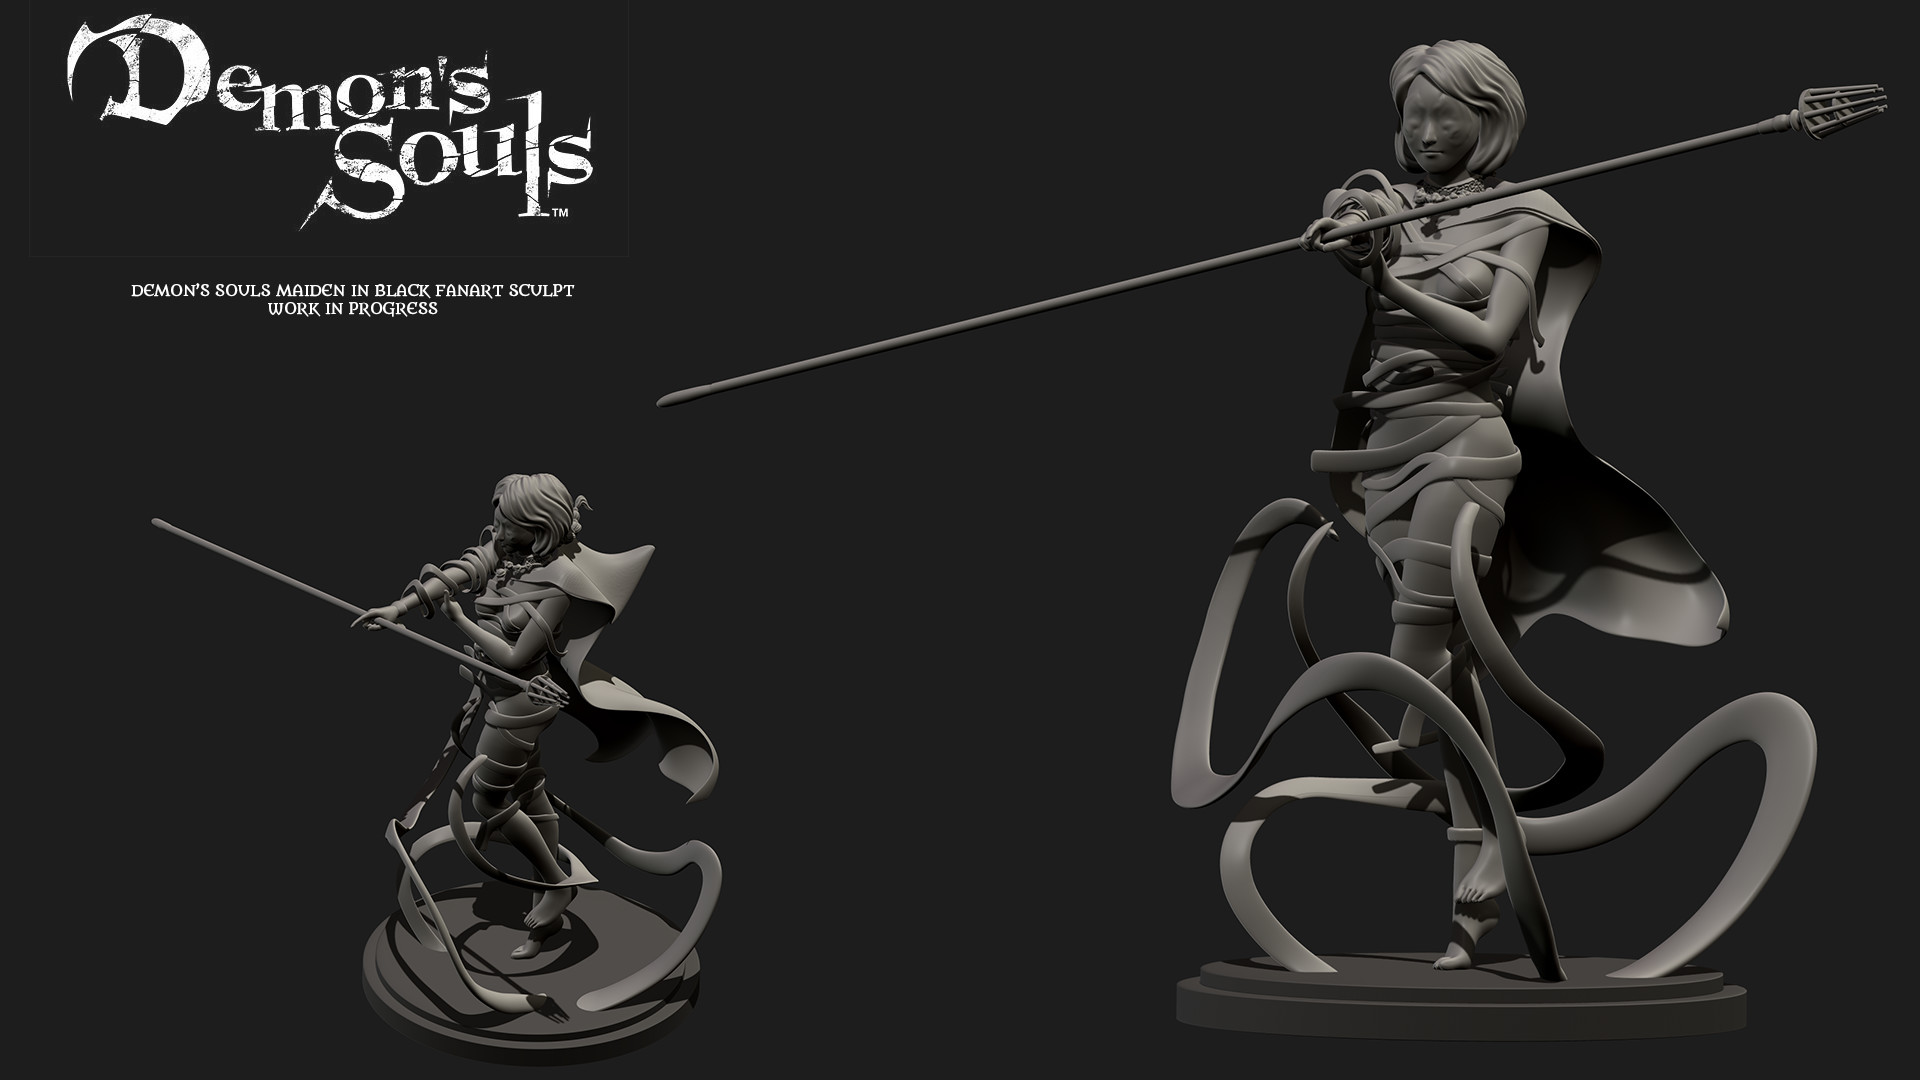 artstation - demon's souls maiden in black fan-art sculpt, michael